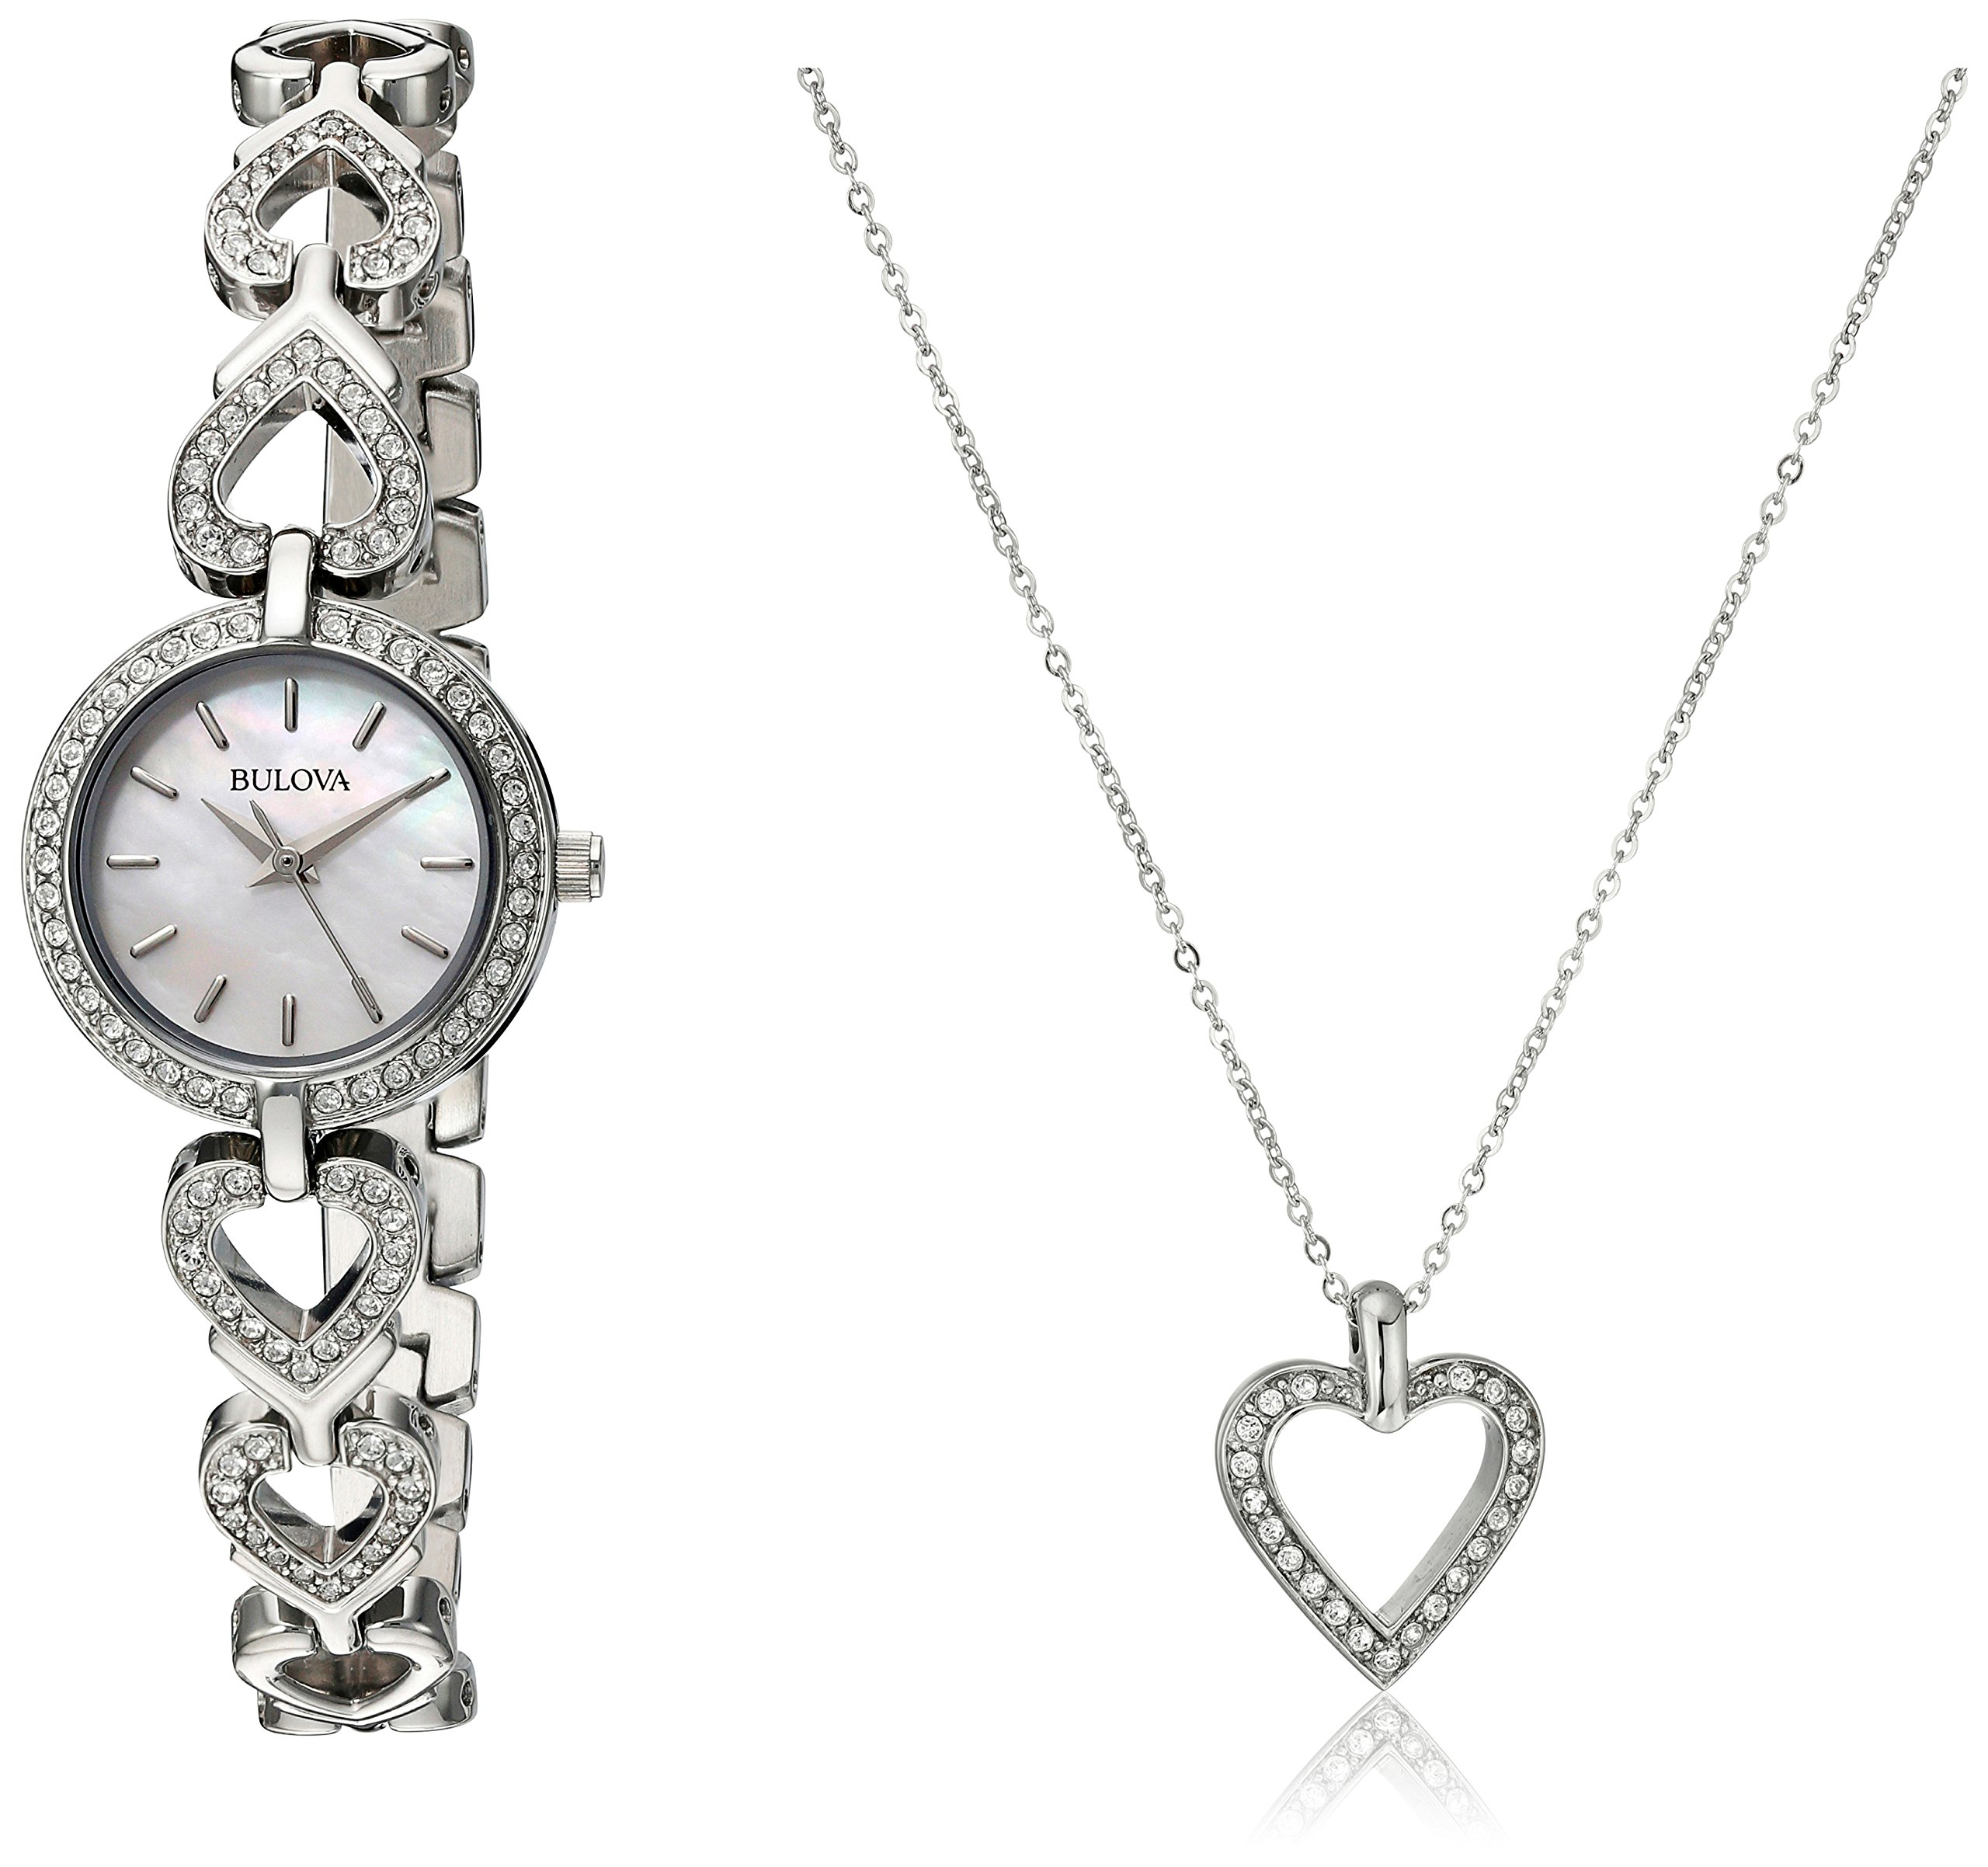 Bulova Women's 96X136 Swarvoski Crystal Box Set with Heart Pendant Necklace